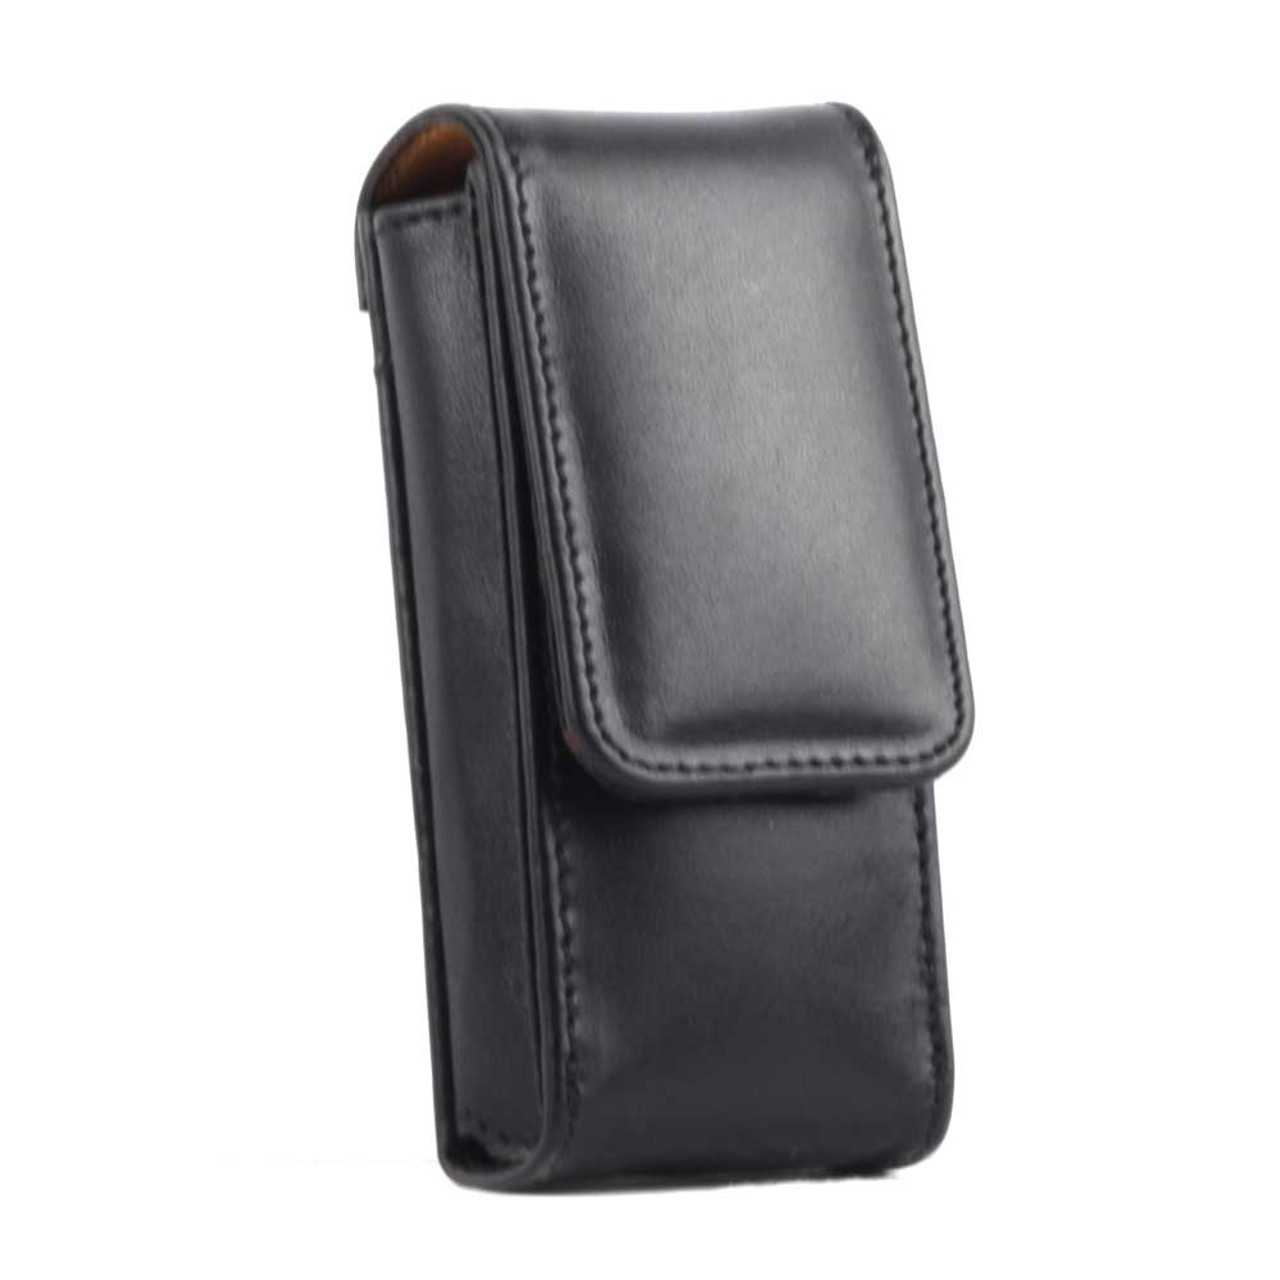 Masterpiece Arms 32 Plan B Magazine Holster